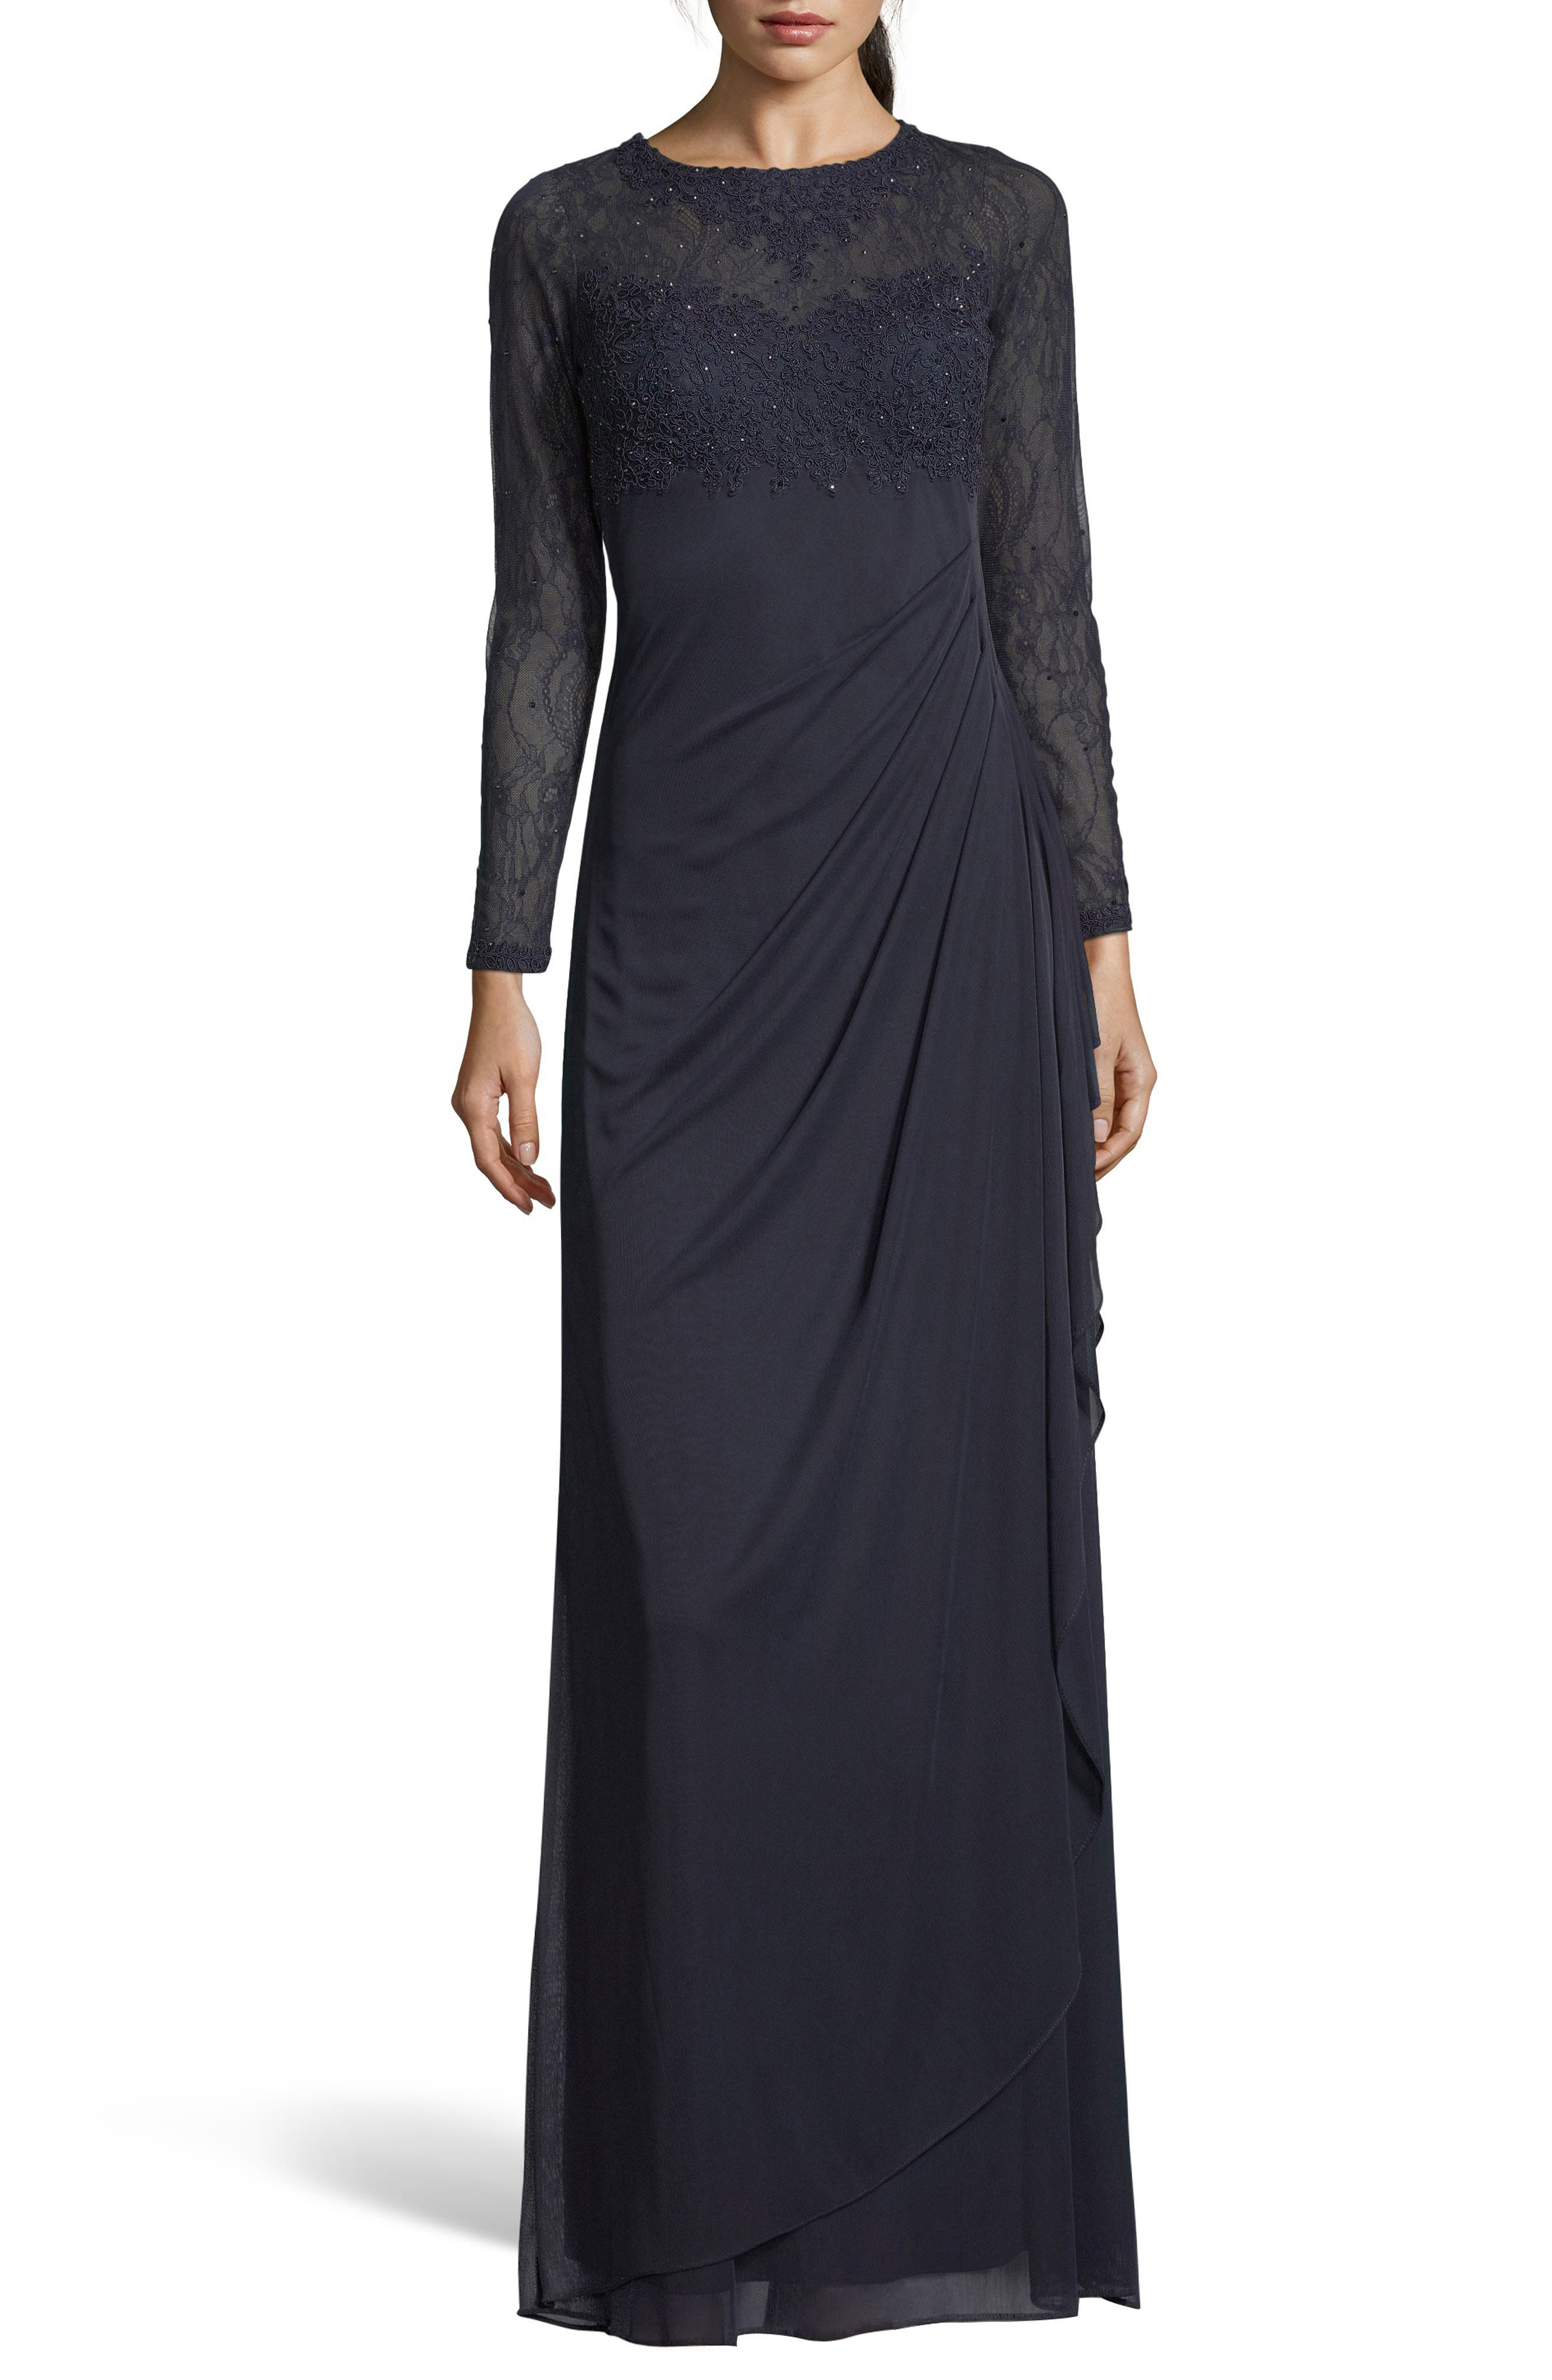 1940s Clothing Womens Xscape Lace Bodice Ruched Evening Dress $268.00 AT vintagedancer.com